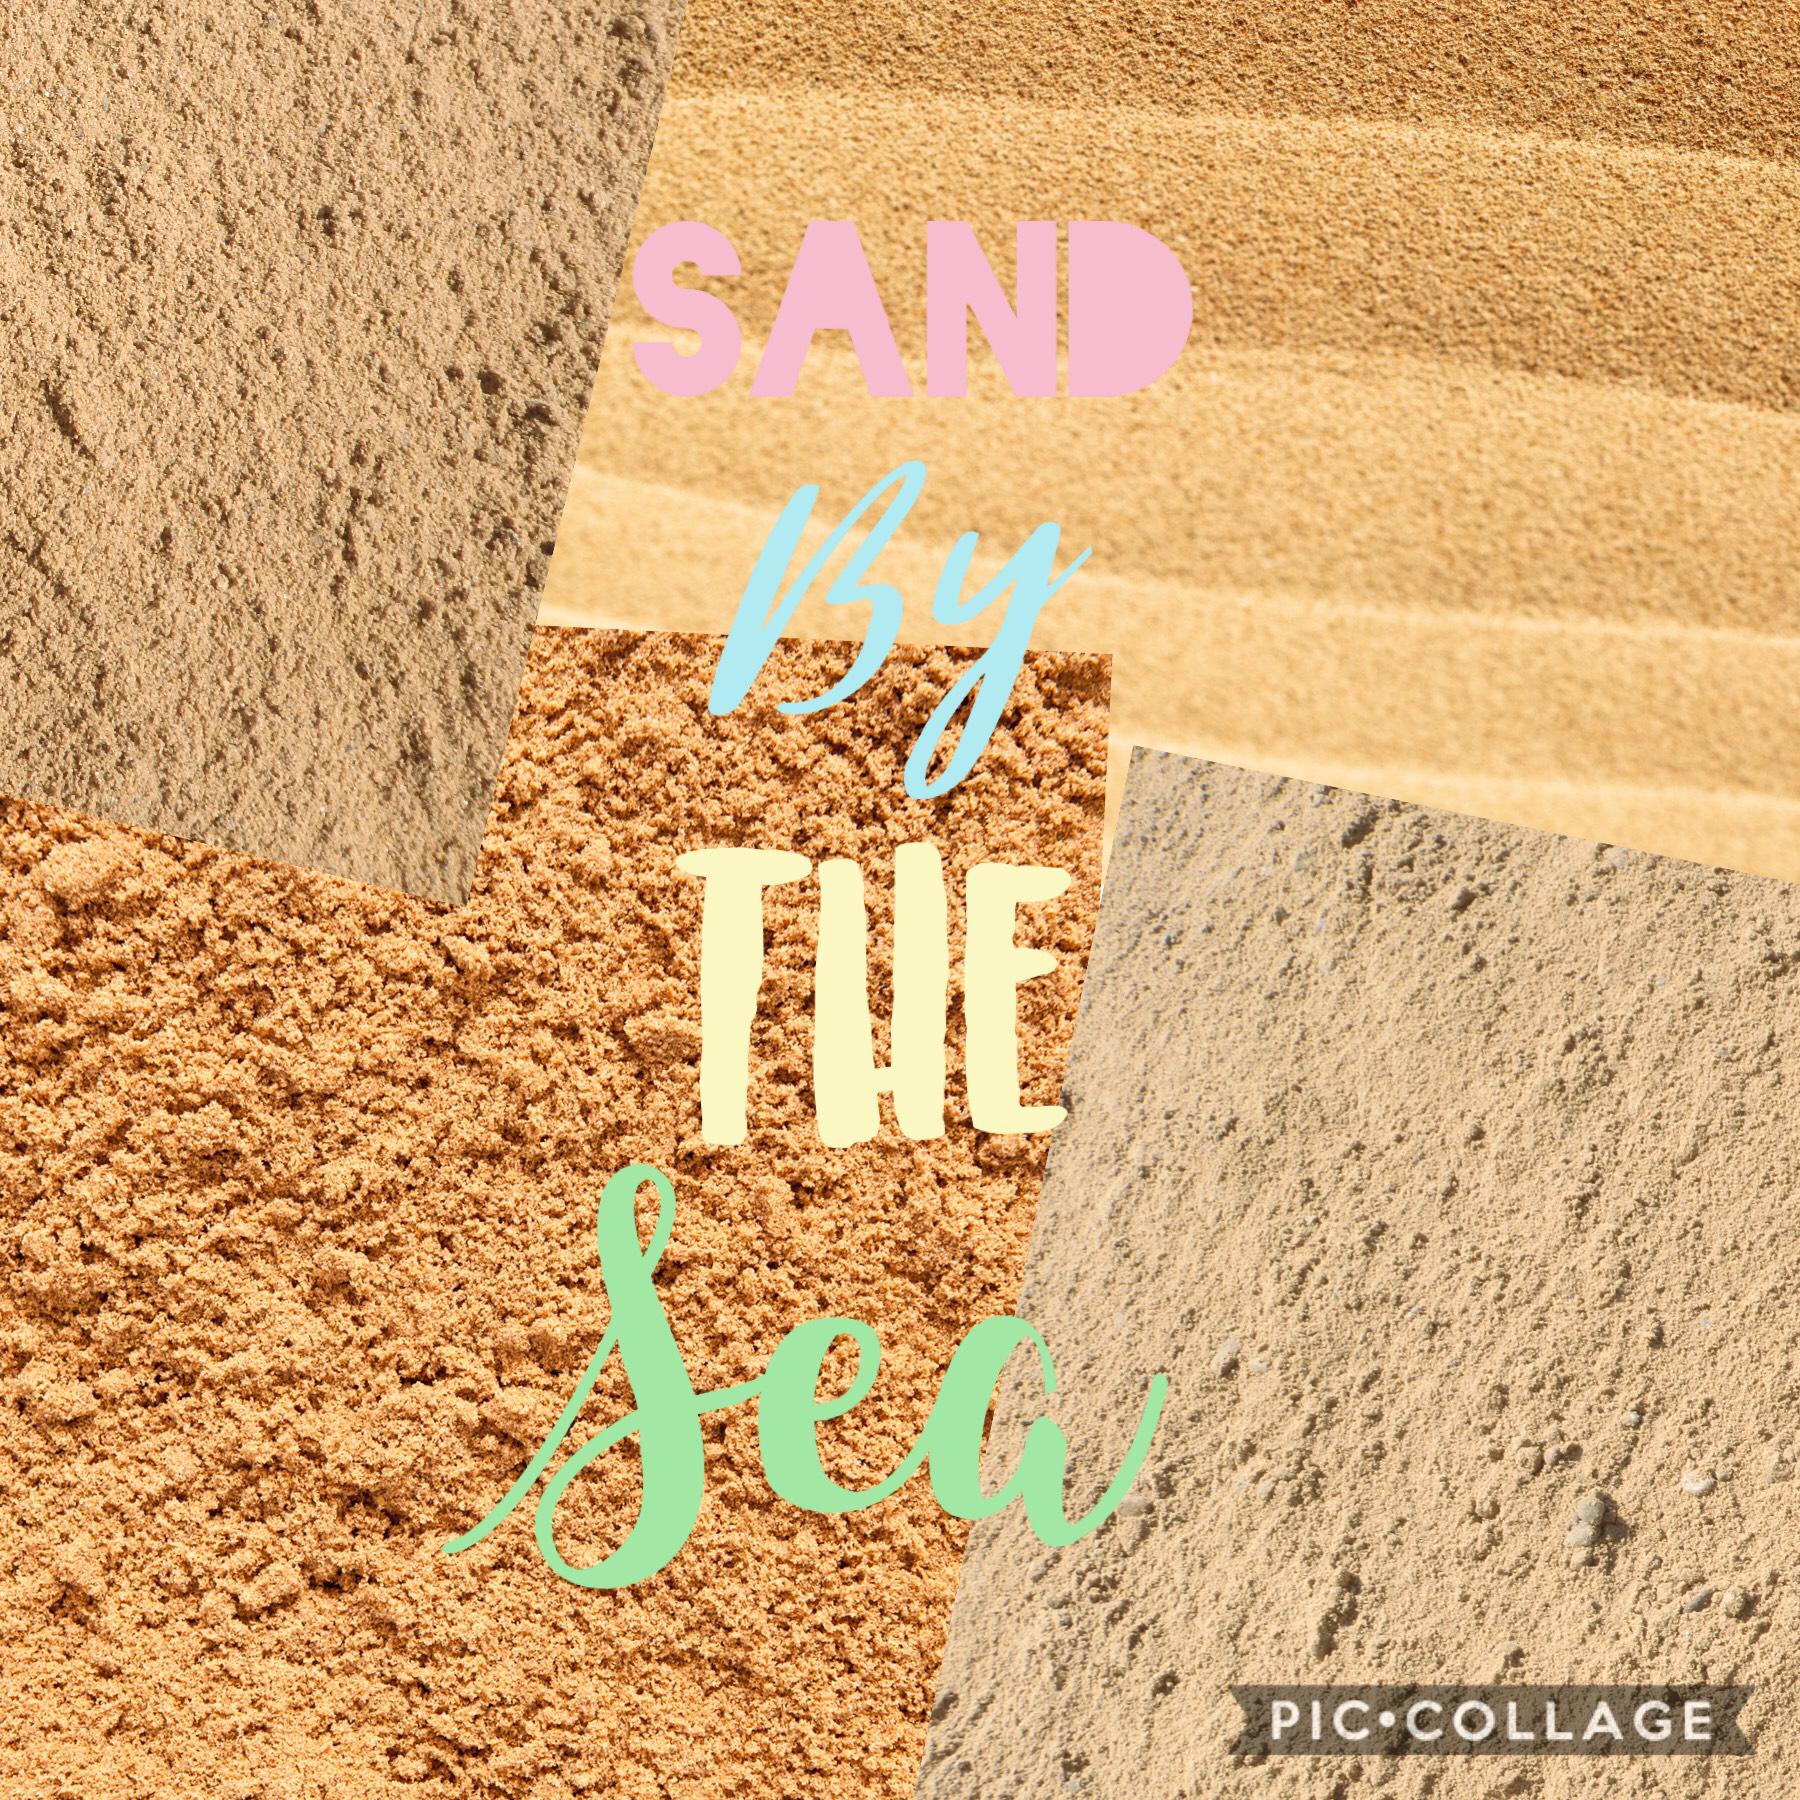 Sand by the sea! (Sorry I haven't been active)